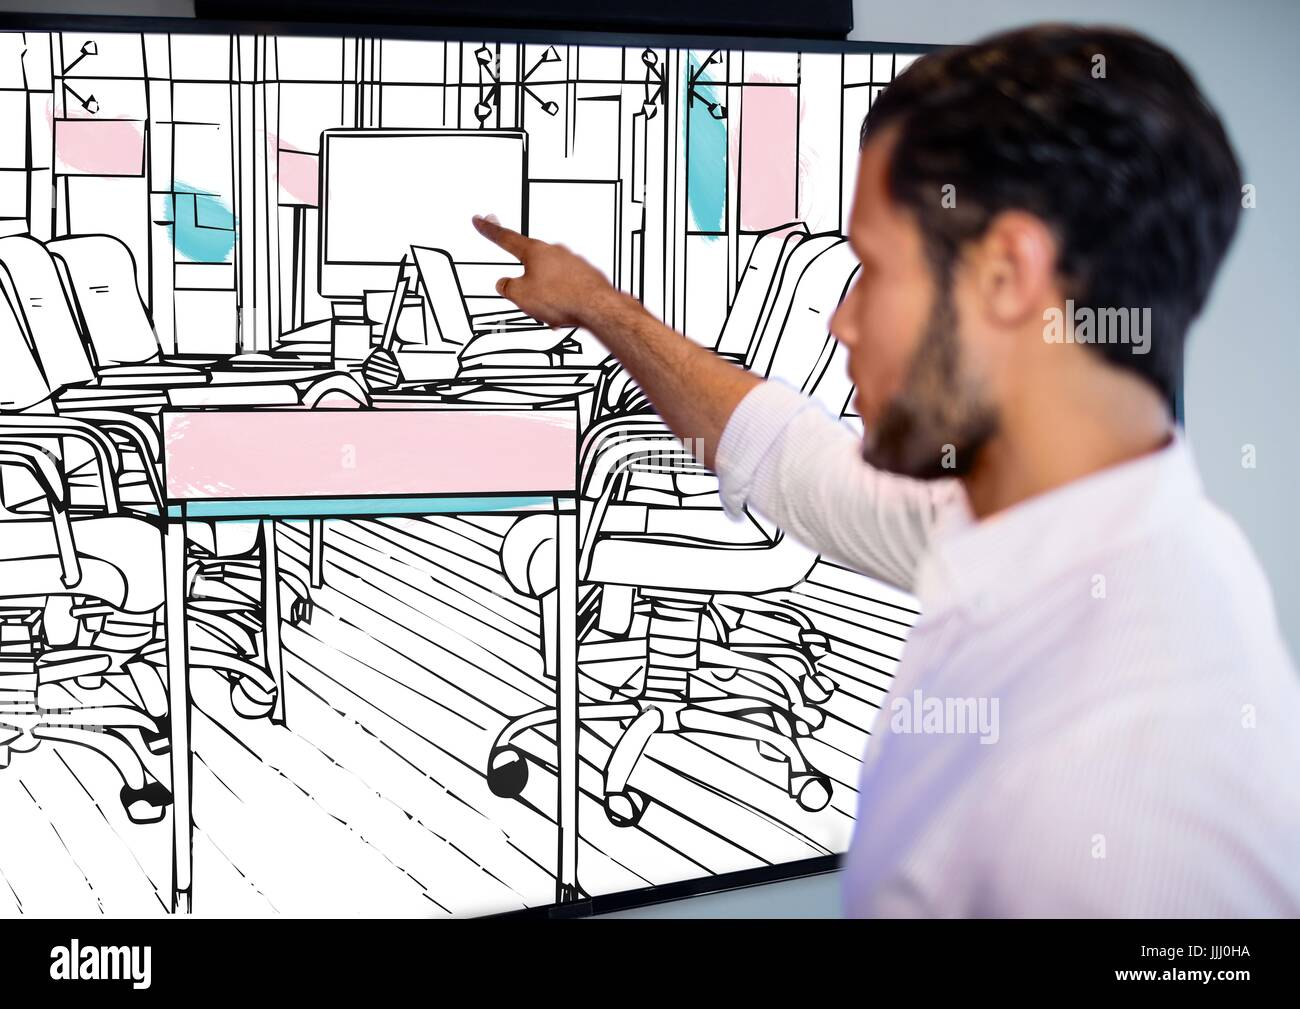 businessman (blurred) pointing the big screen with 3D new office lines (black and white with pink an - Stock Photo